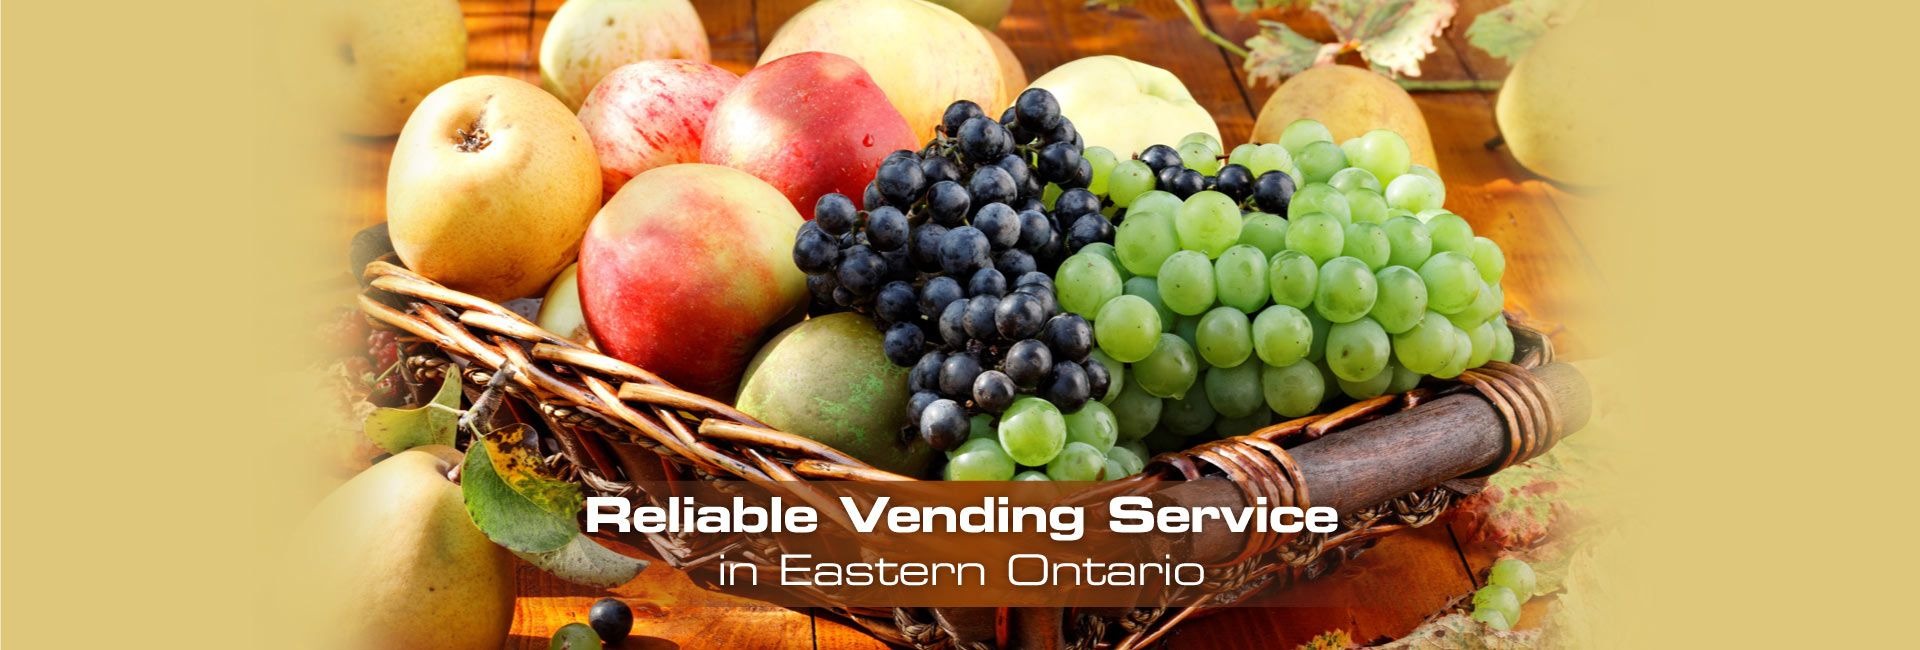 Reliable Vending Service in Eastern Ontario | Close-up of soda cans